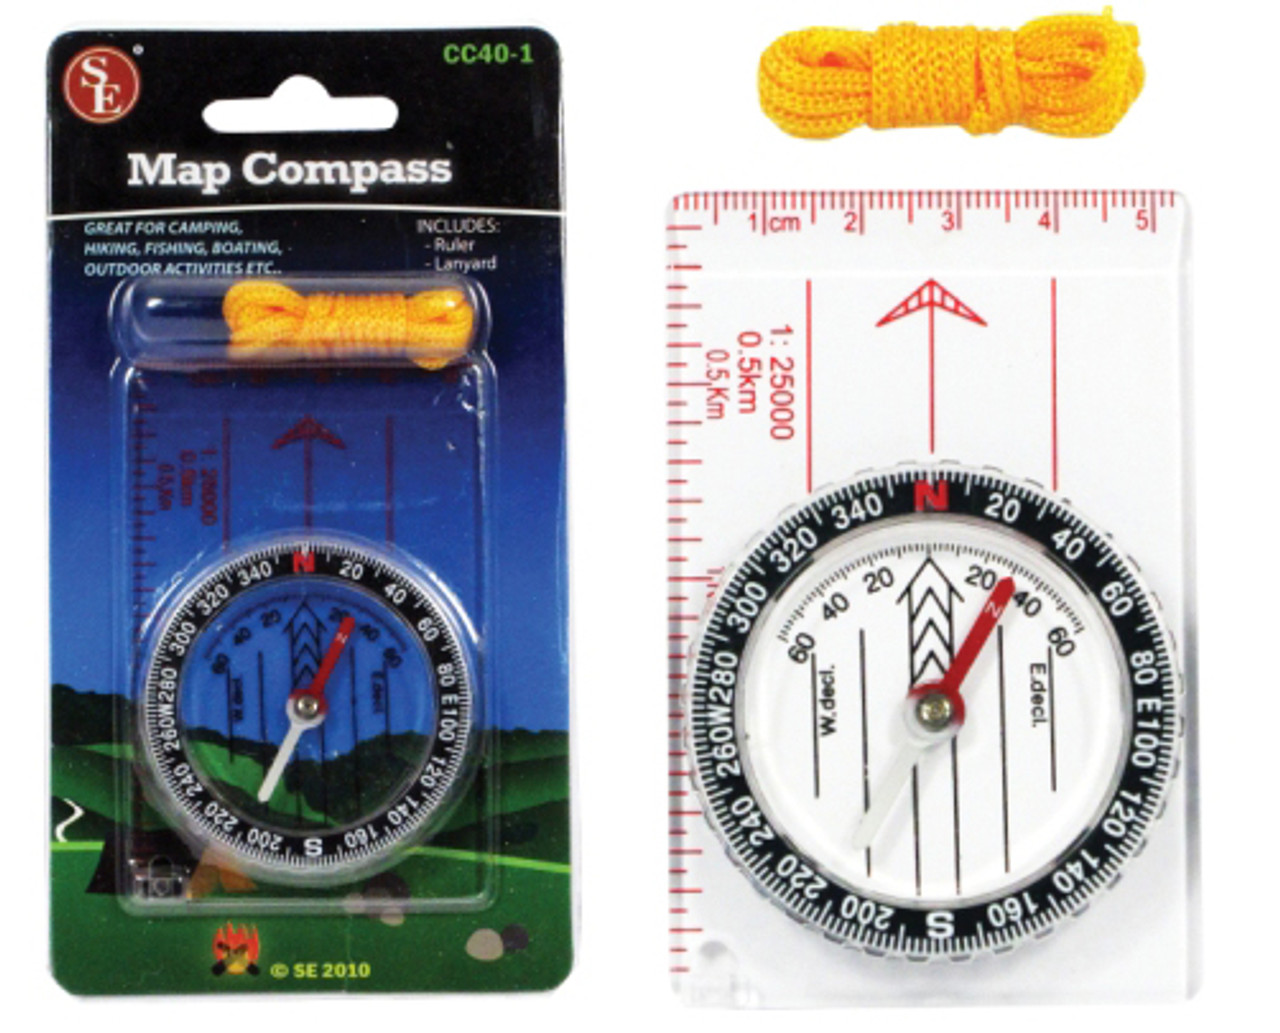 Map Compass w/Ruler and Lanyard